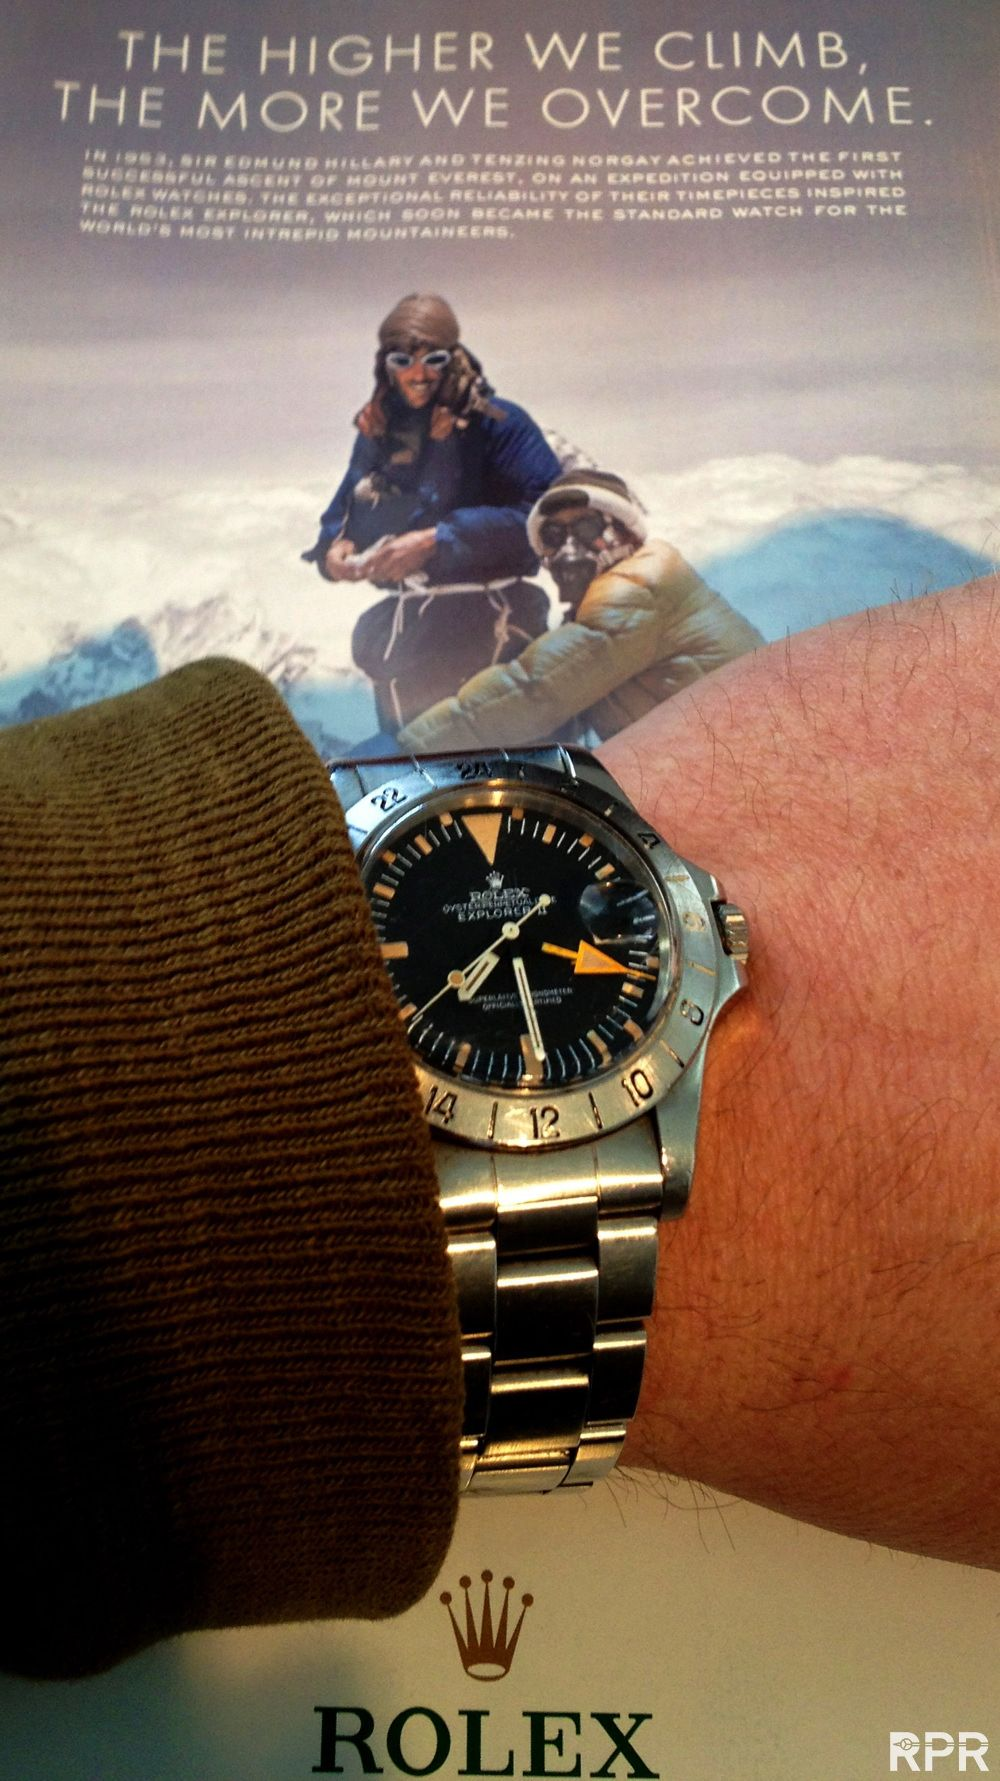 Rpr siredhillaryrolex1655 horloges en for Jason statham rolex explorer